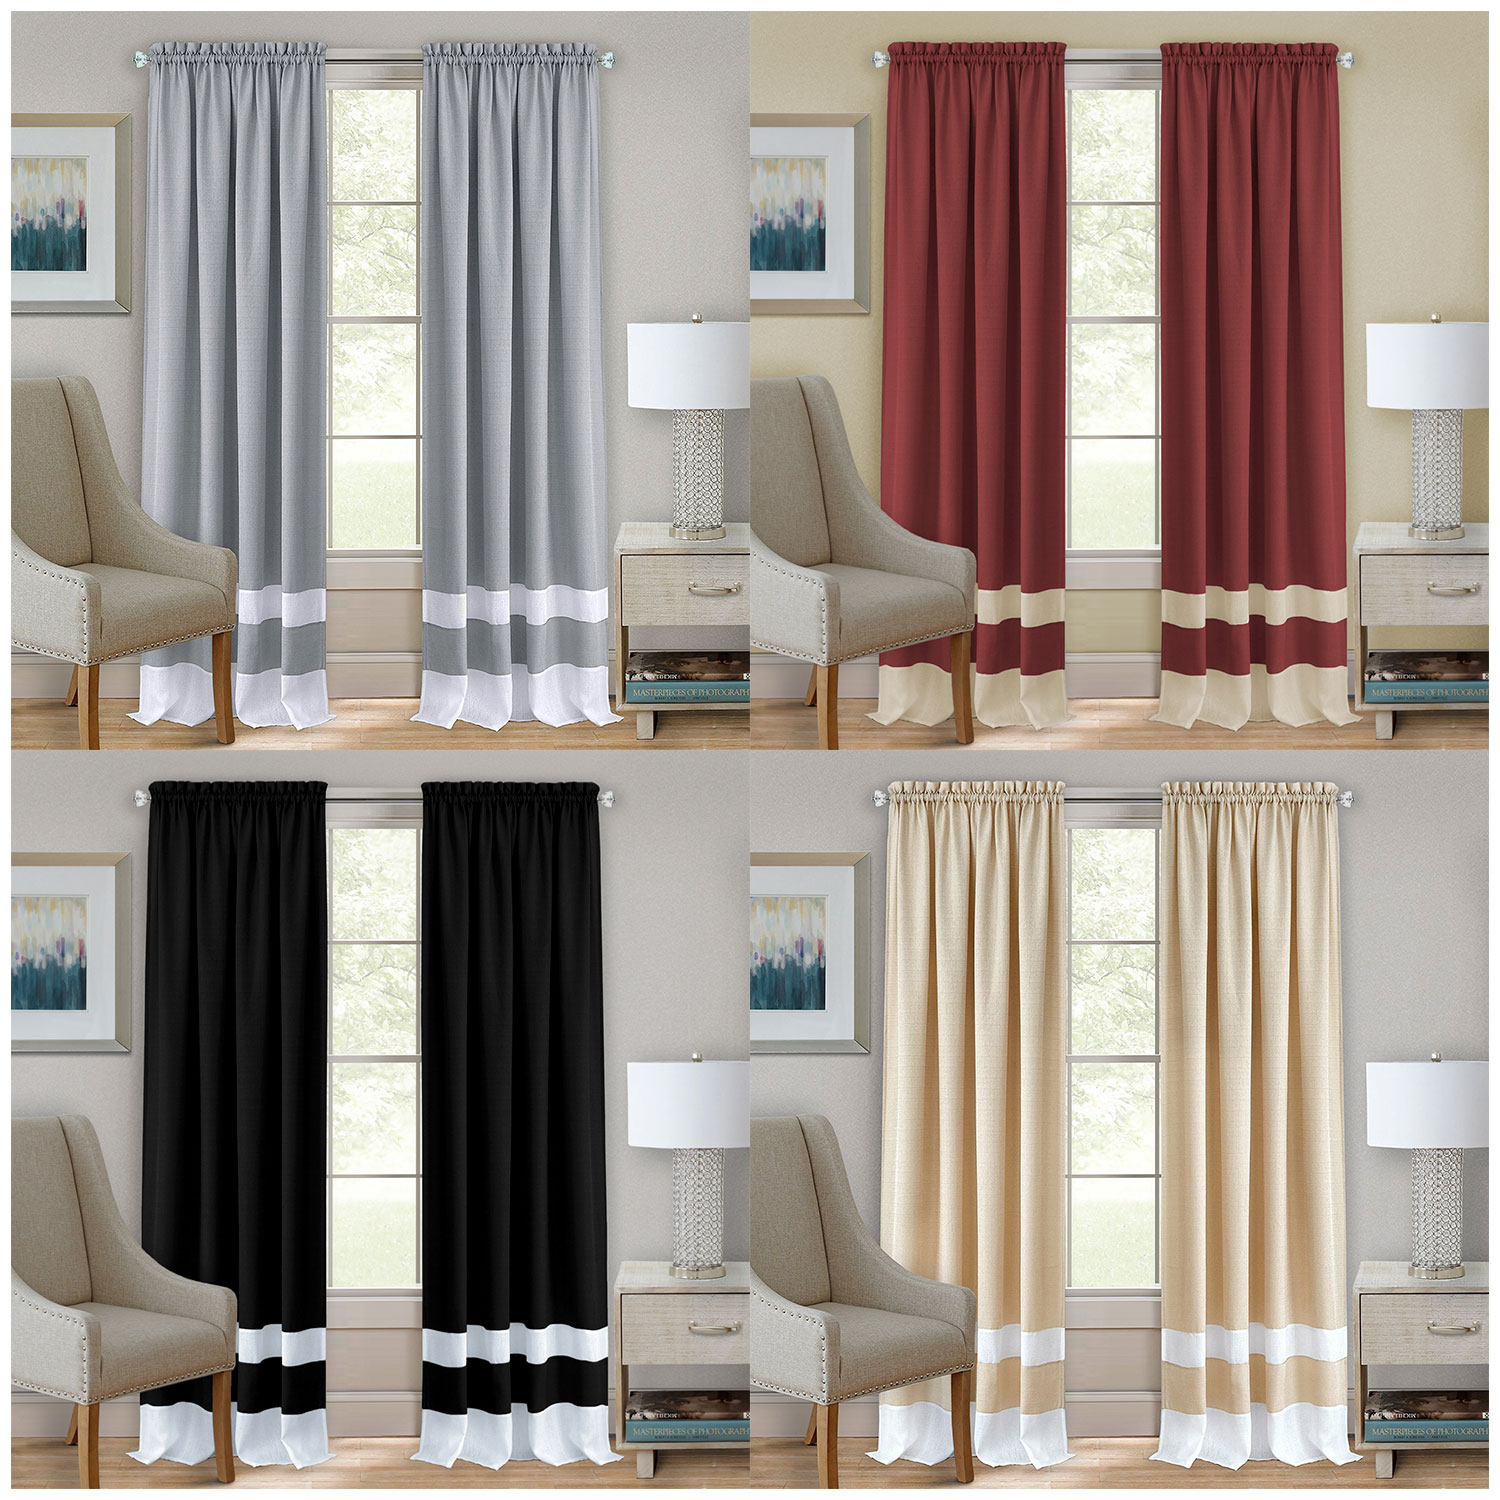 Curtain For Double Window Details About Modern Two Tone Window Curtain Double Layer 2 Pack Panels Set Kitchen Or Home